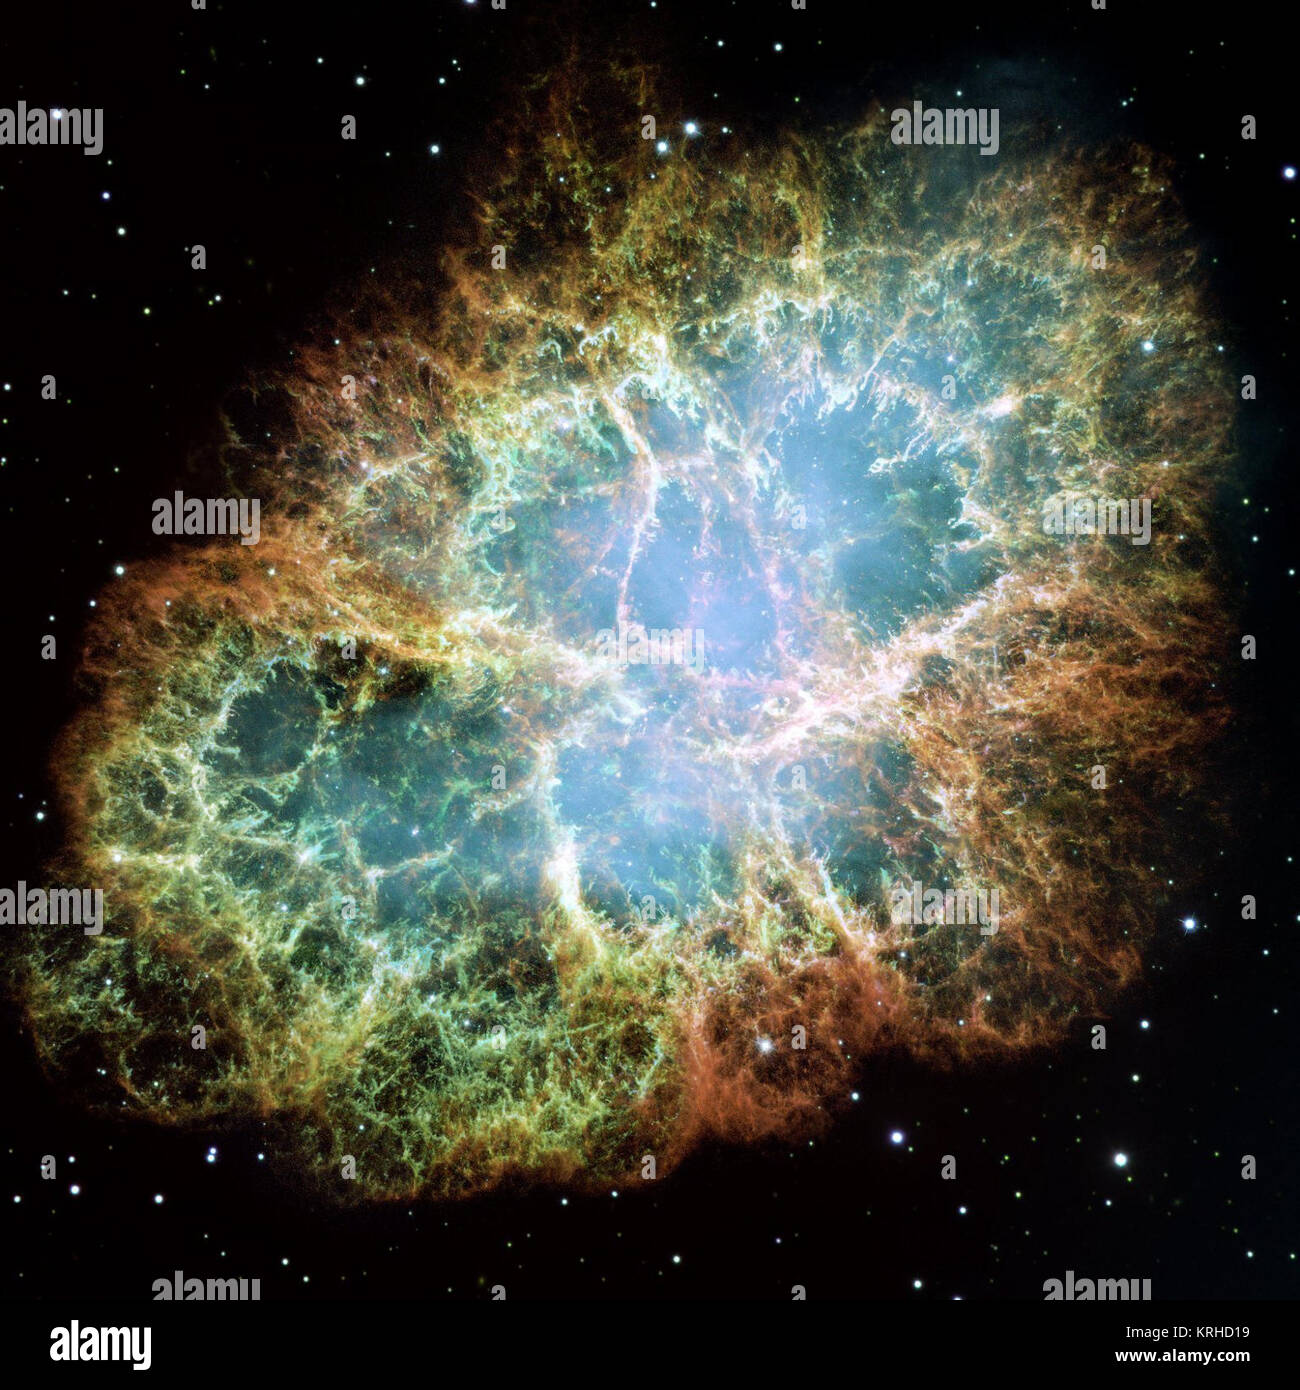 *Description*:  This is a mosaic image, one of the largest ever taken by NASA's Hubble Space Telescope of the Crab Stock Photo